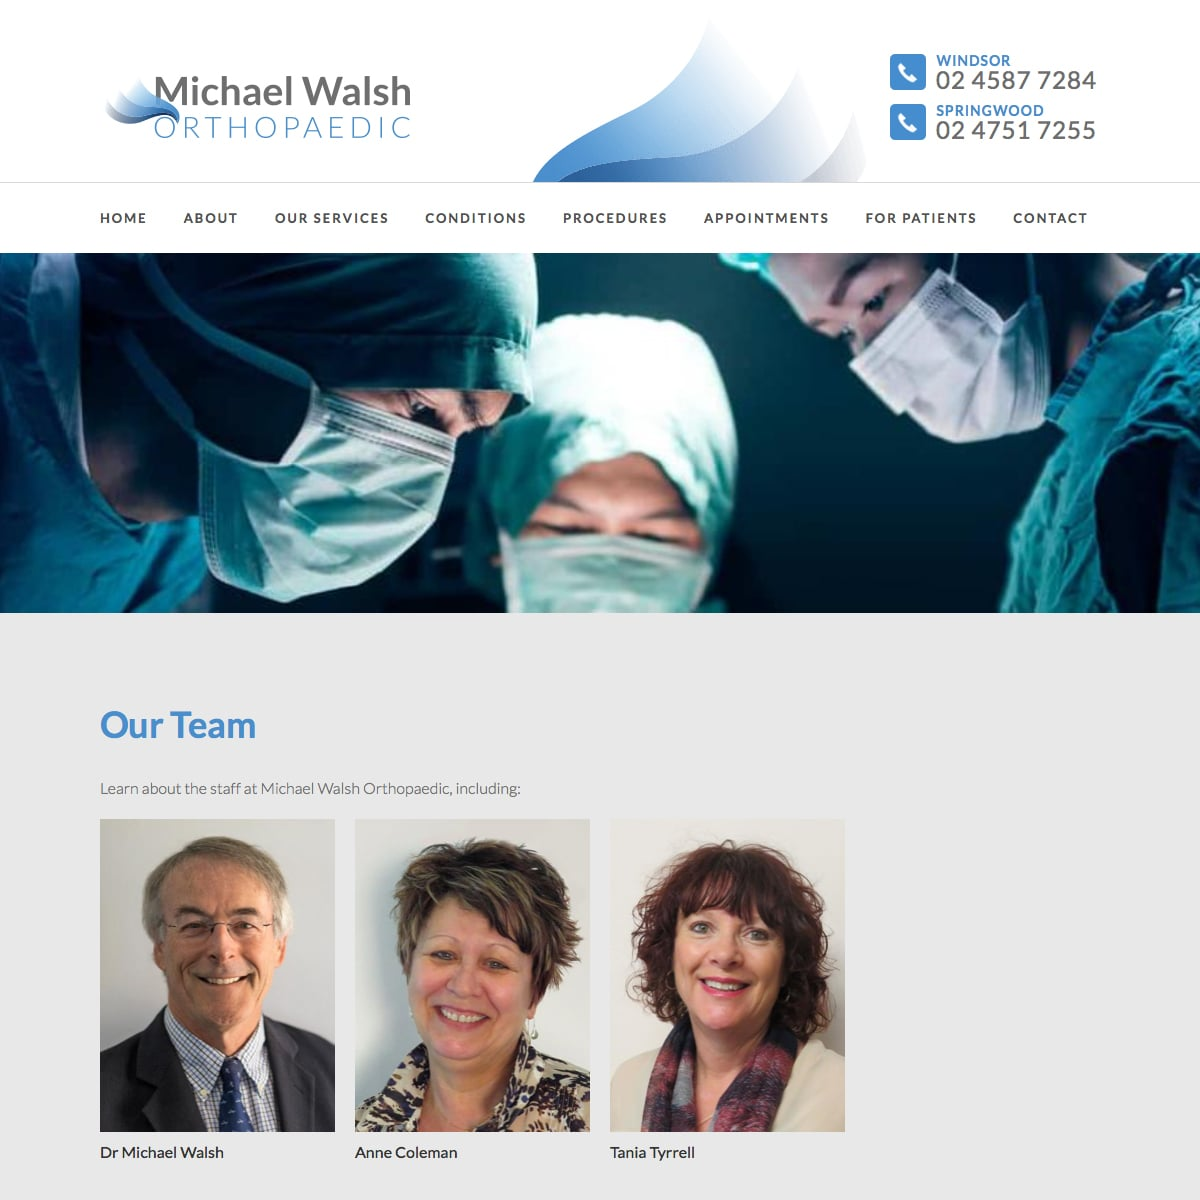 Michael Walsh Orthopaedic - Our Team